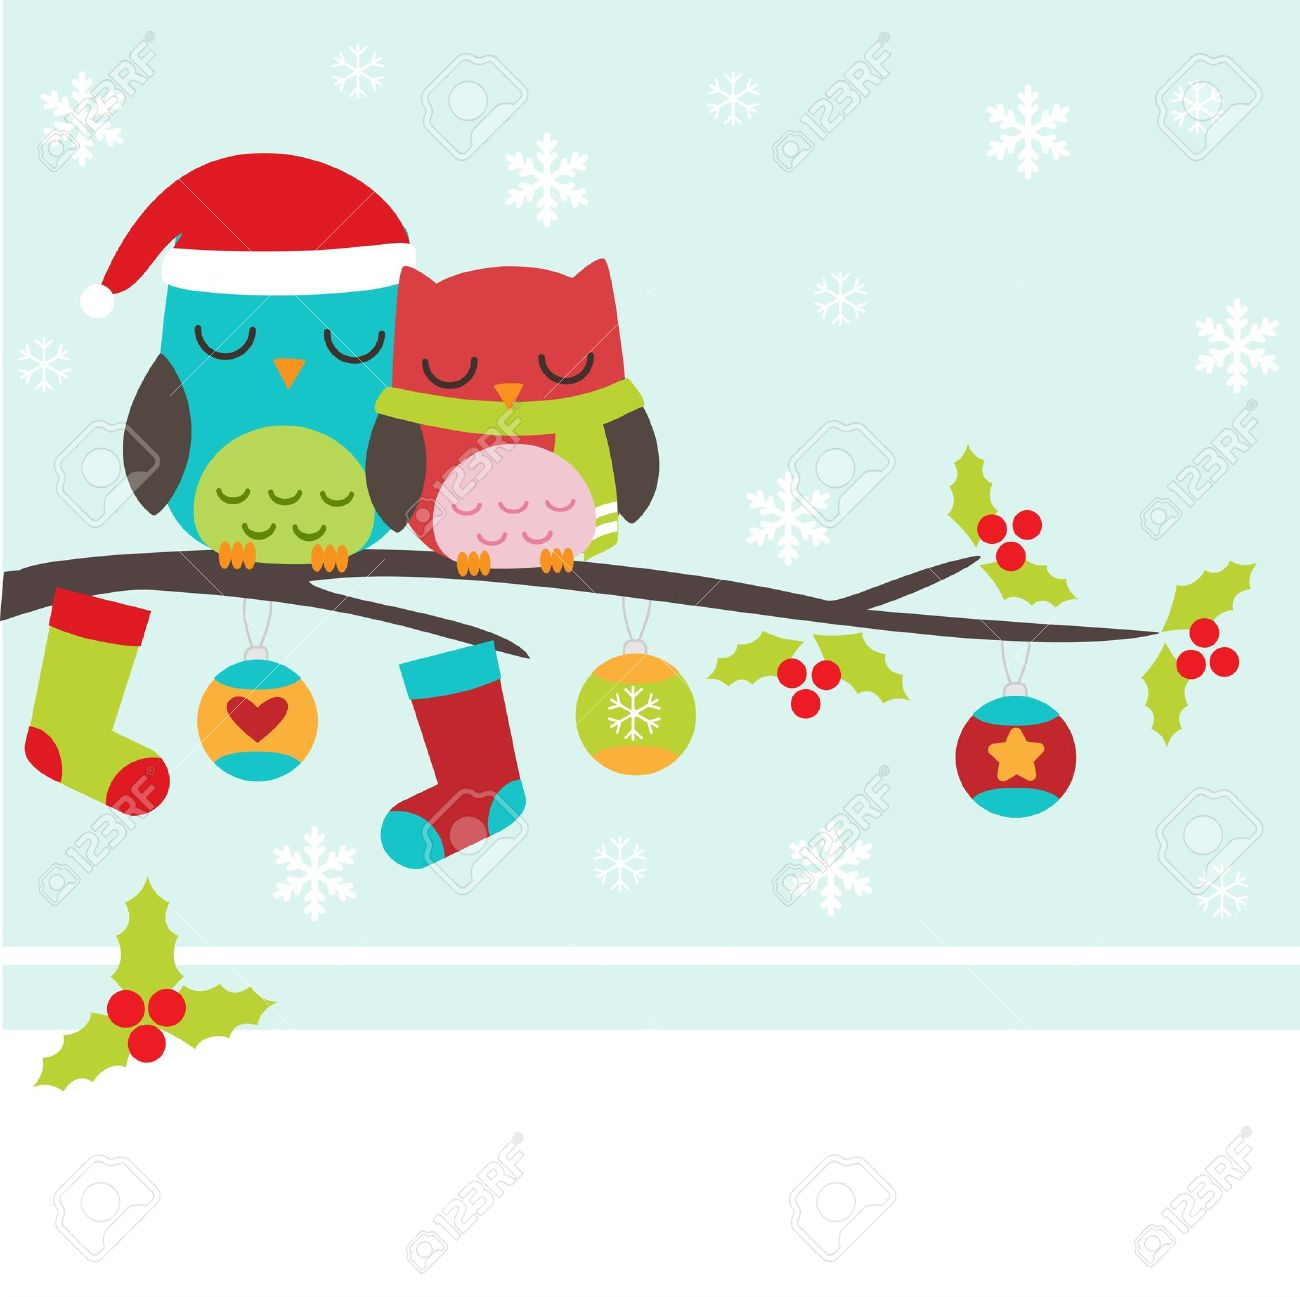 Christmas card with couple of owls Stock Vector - 15133357